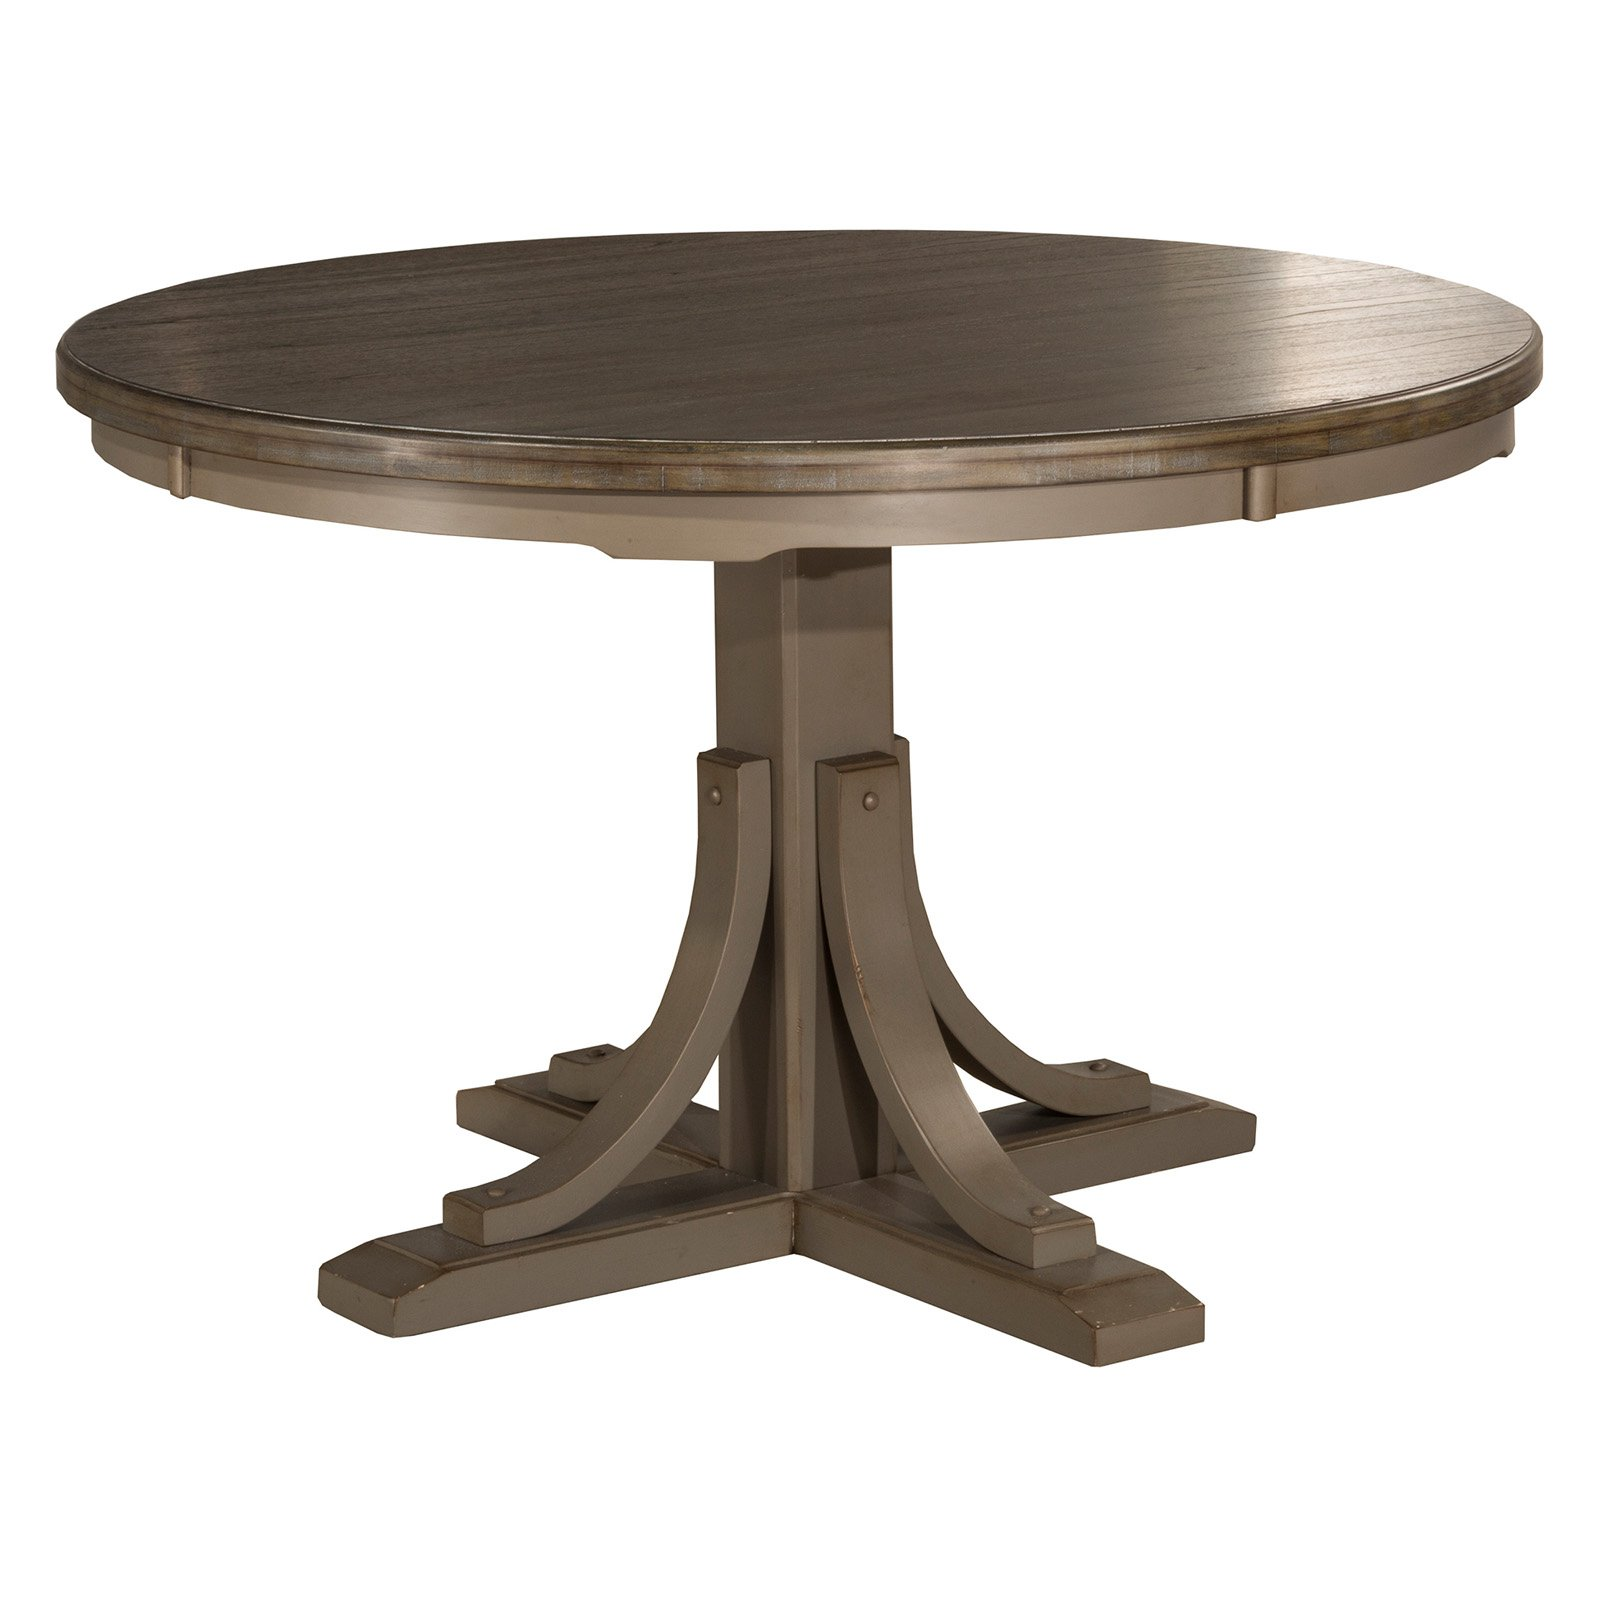 Hillsdale Furniture Clarion Round Dining Table